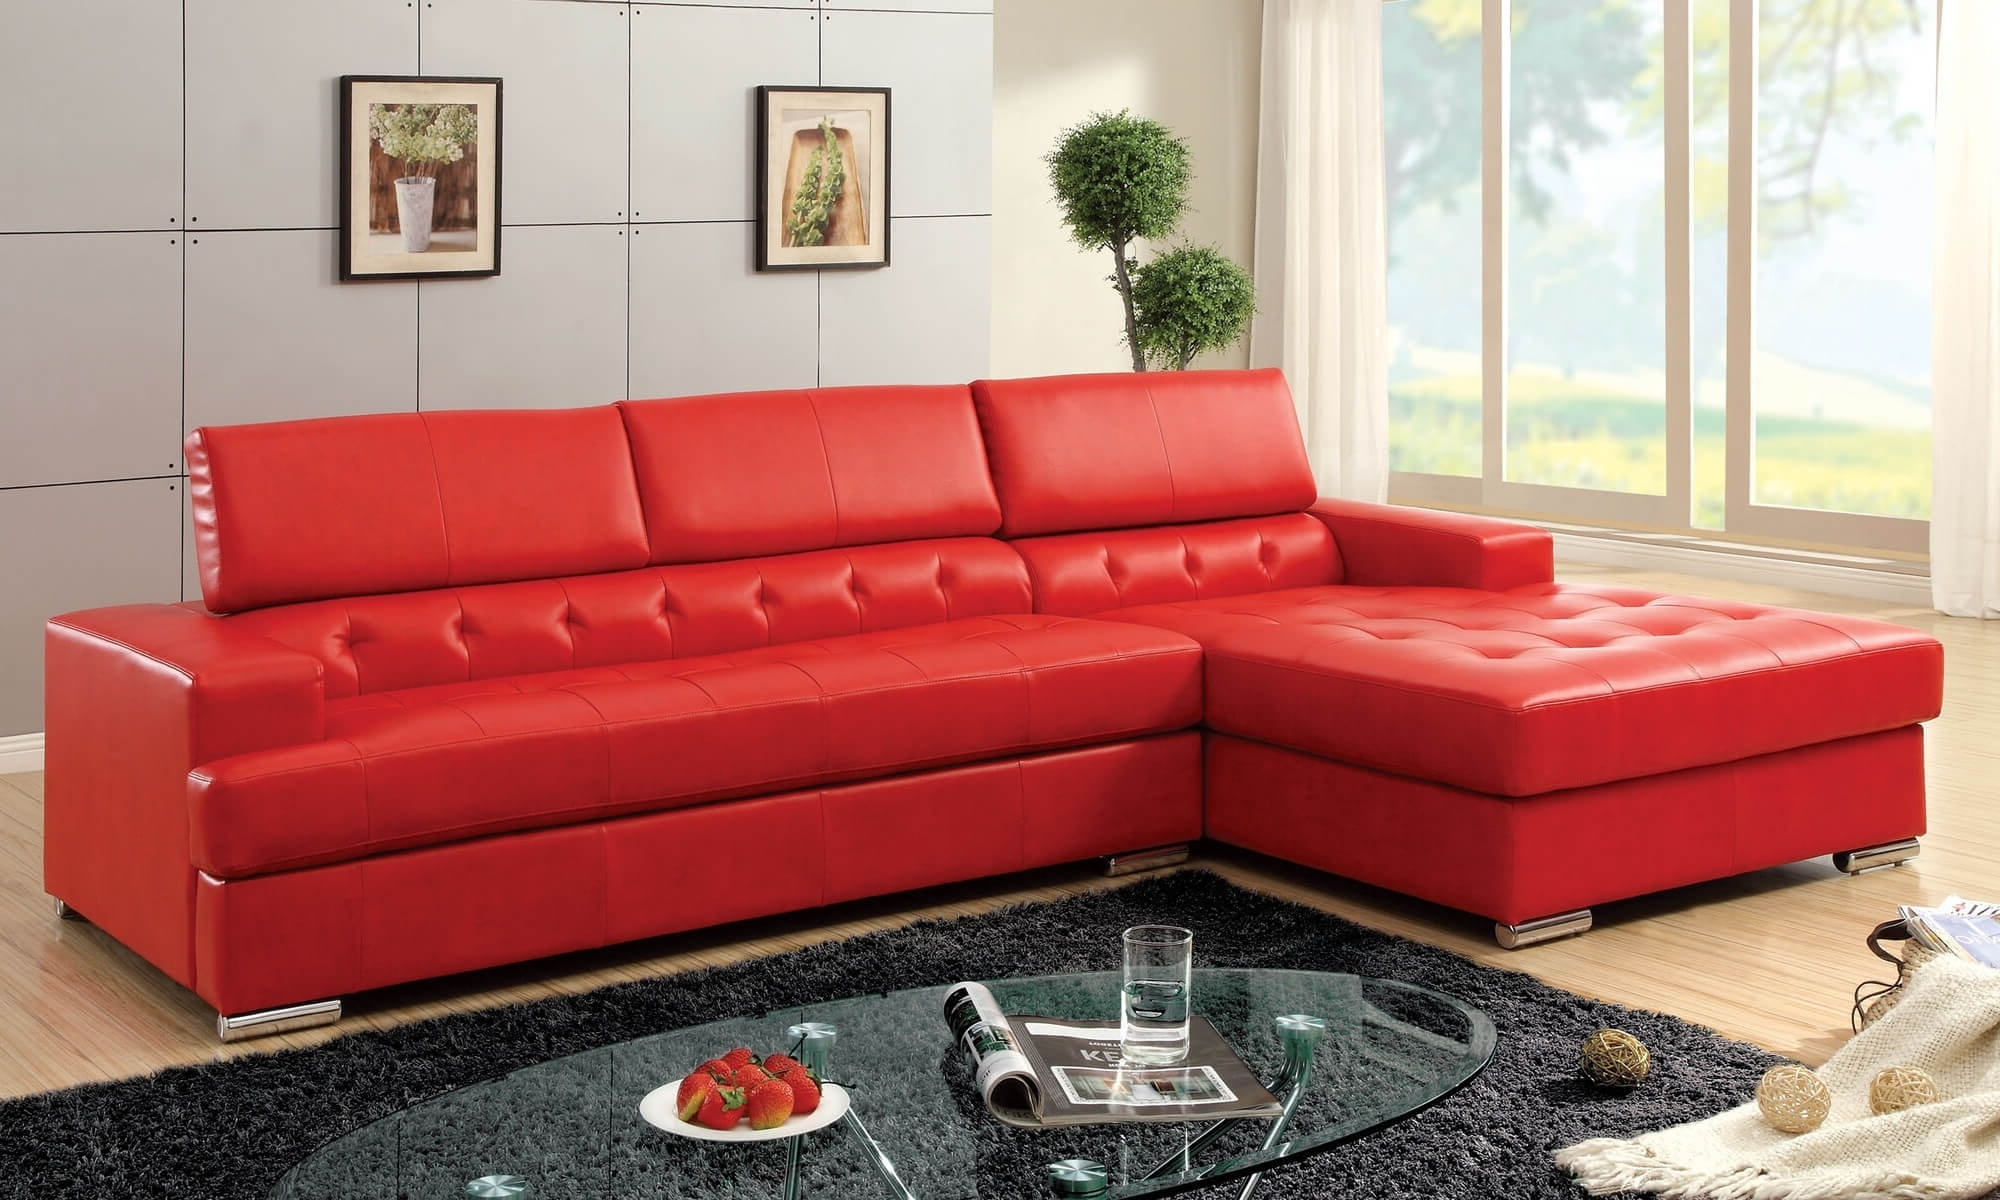 2017 Modern Red Leather Sectional Sofa • Leather Sofa Regarding Red Sectional Sofas With Ottoman (View 1 of 15)